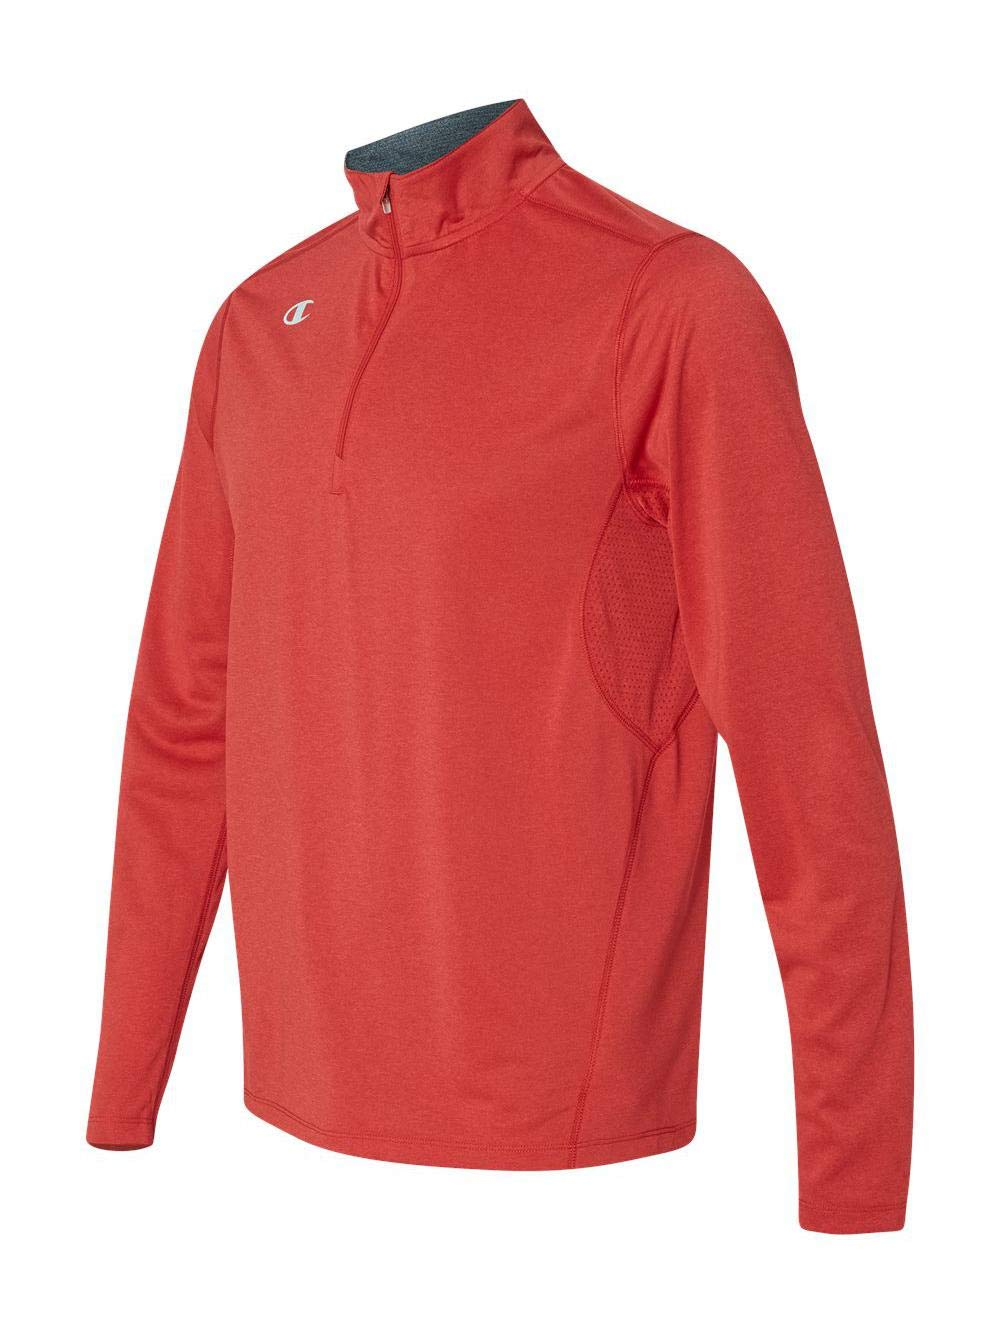 Champion Men's Quarter-Zip Double Dry Pullover, Scarlet Heather, Small by Champion